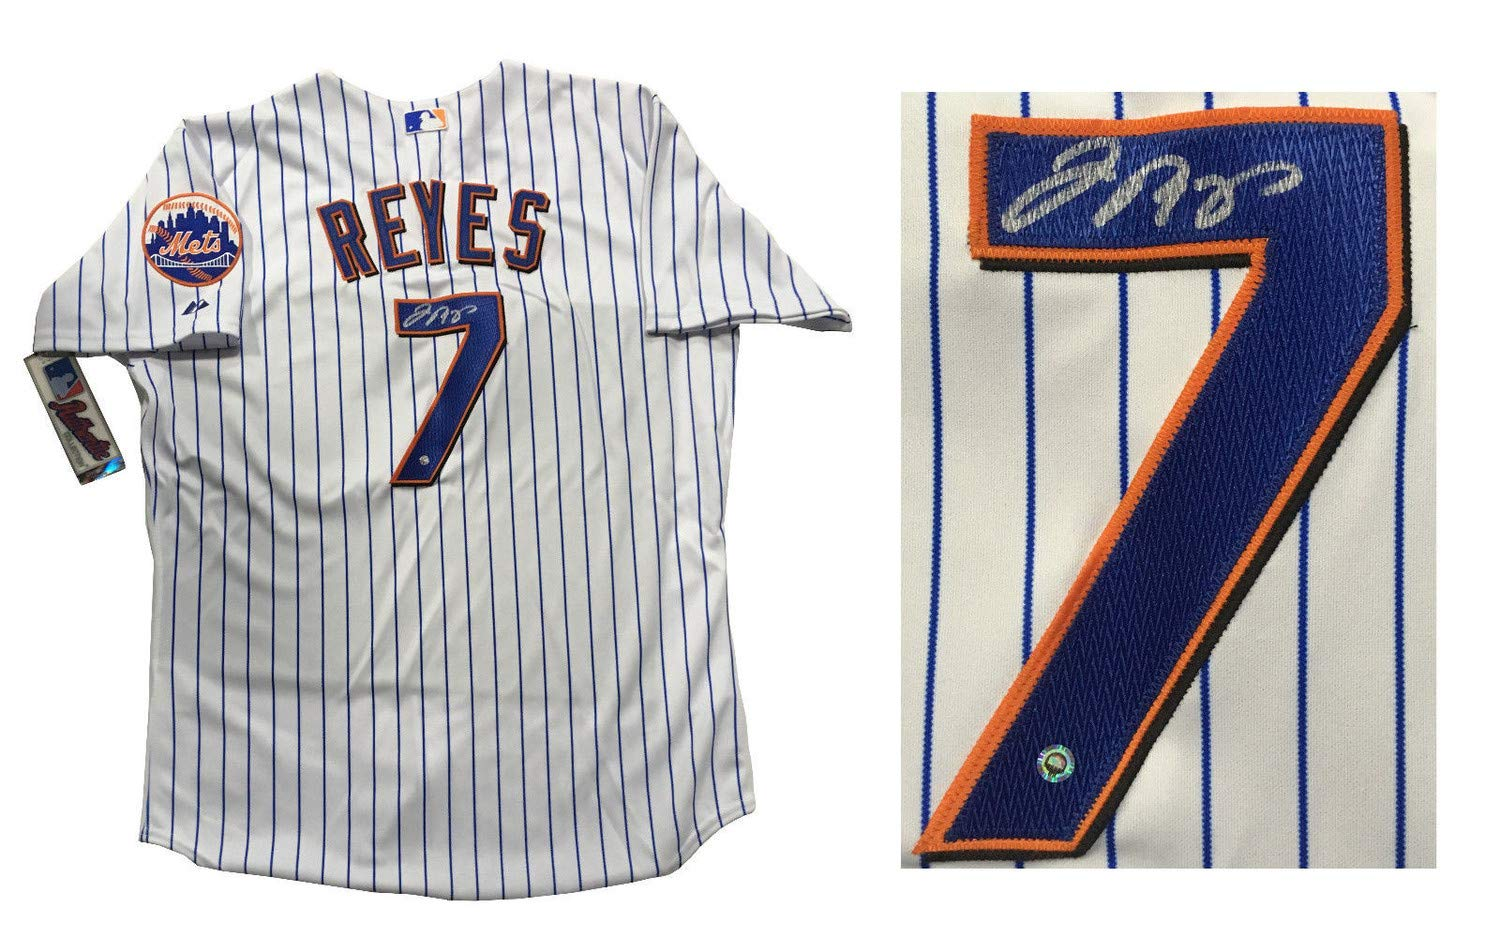 sports shoes 40a56 e3bb2 Jose Reyes Autographed Signed Majestic Authentic Mets ...